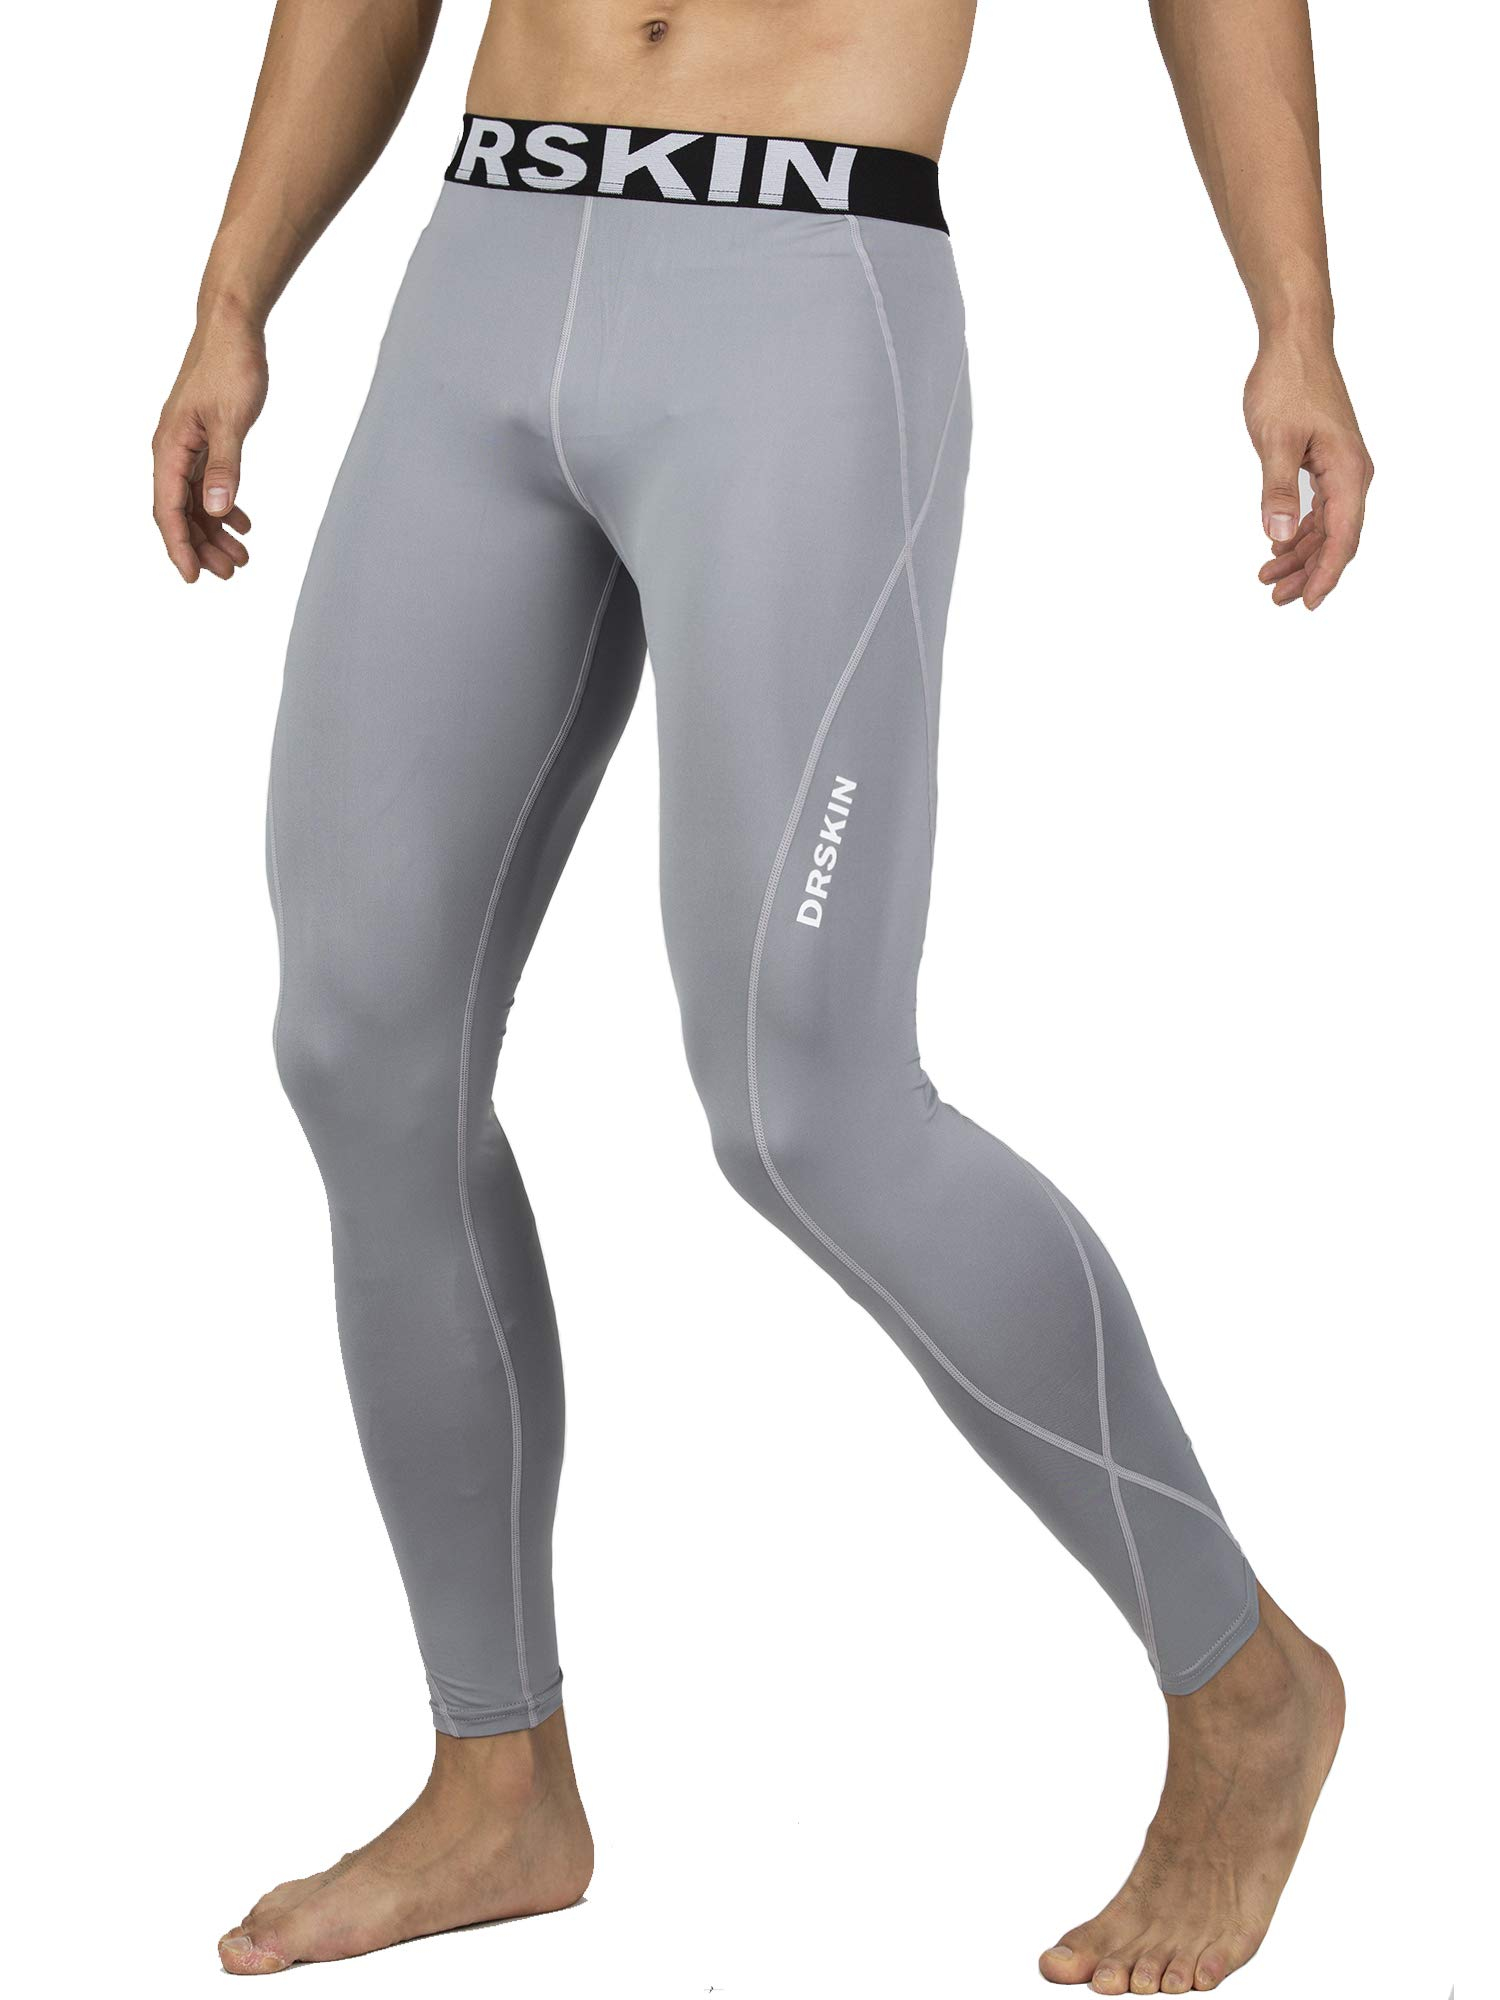 454a31342ca16a Galleon - DRSKIN Compression Cool Dry Sports Tights Pants Baselayer Running  Leggings Yoga Rashguard Men (4XL, DG03)